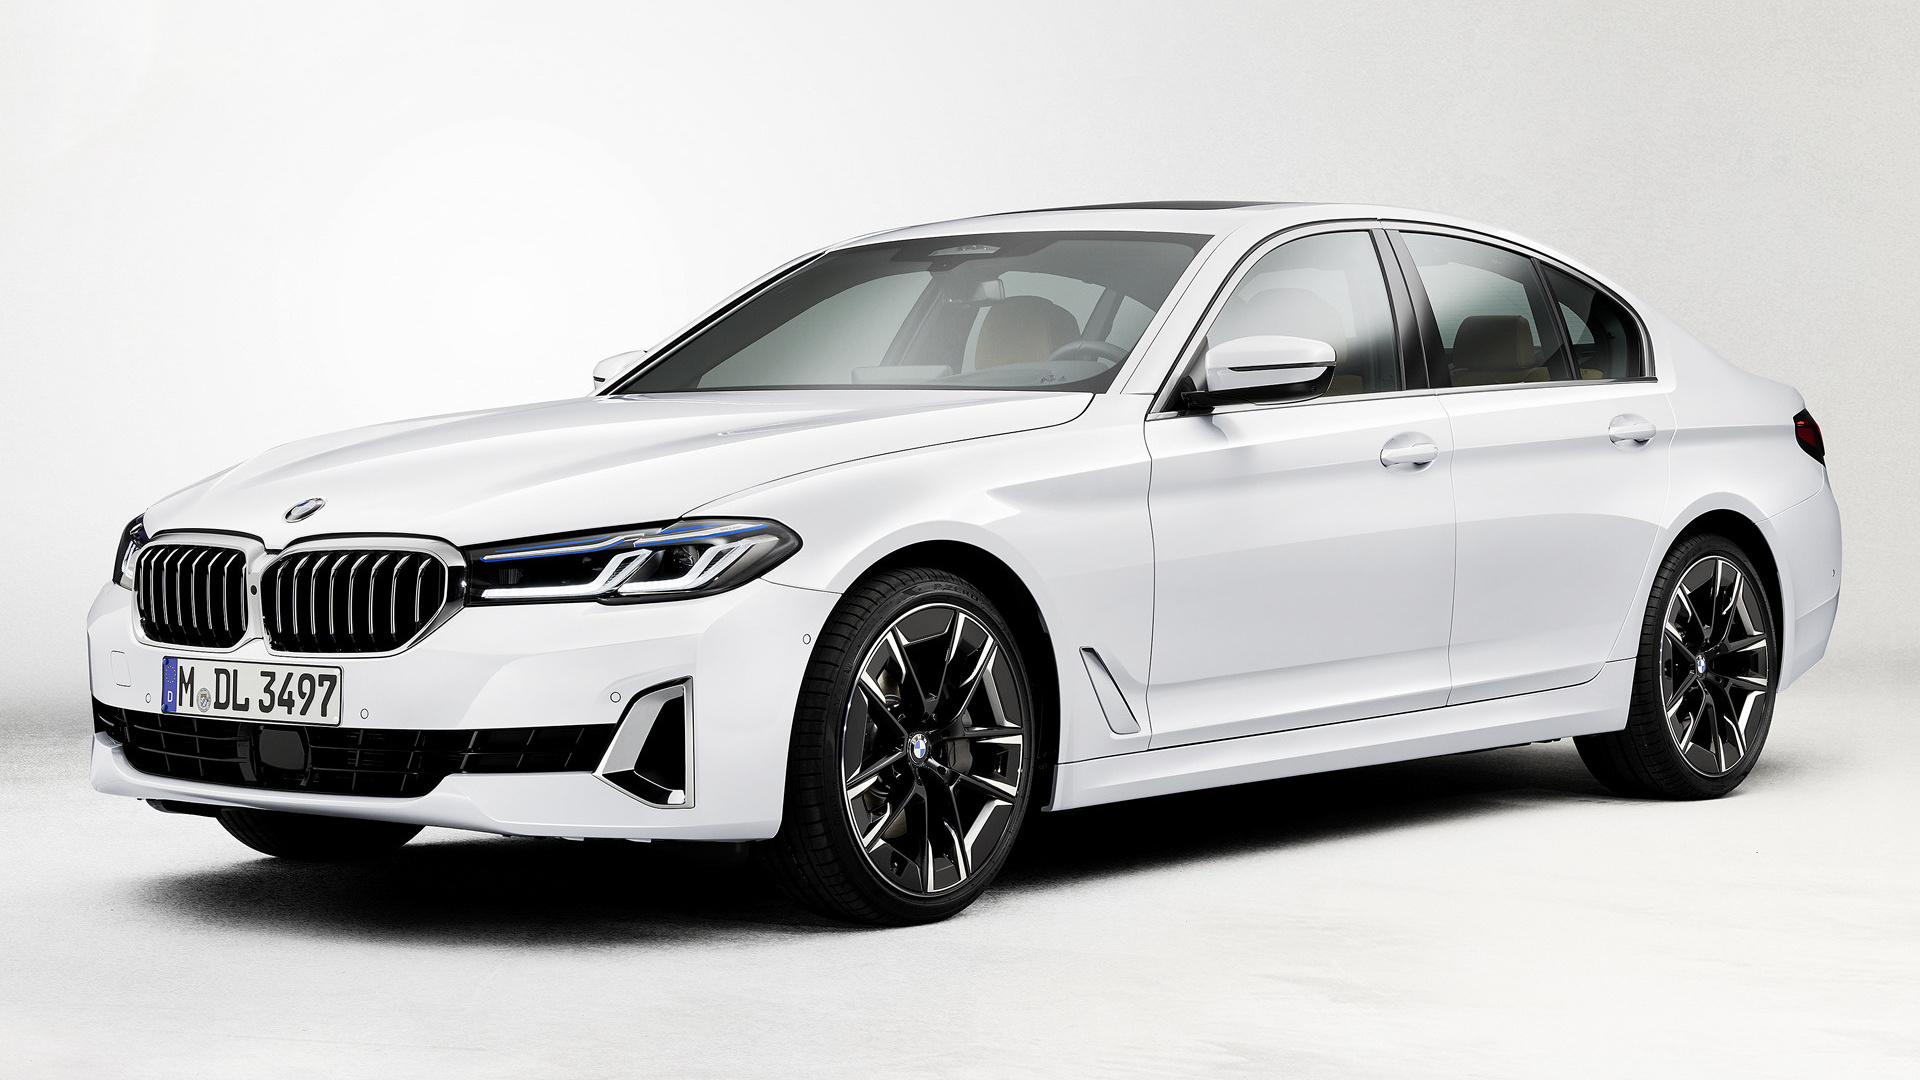 2020 BMW 550I Concept and Review